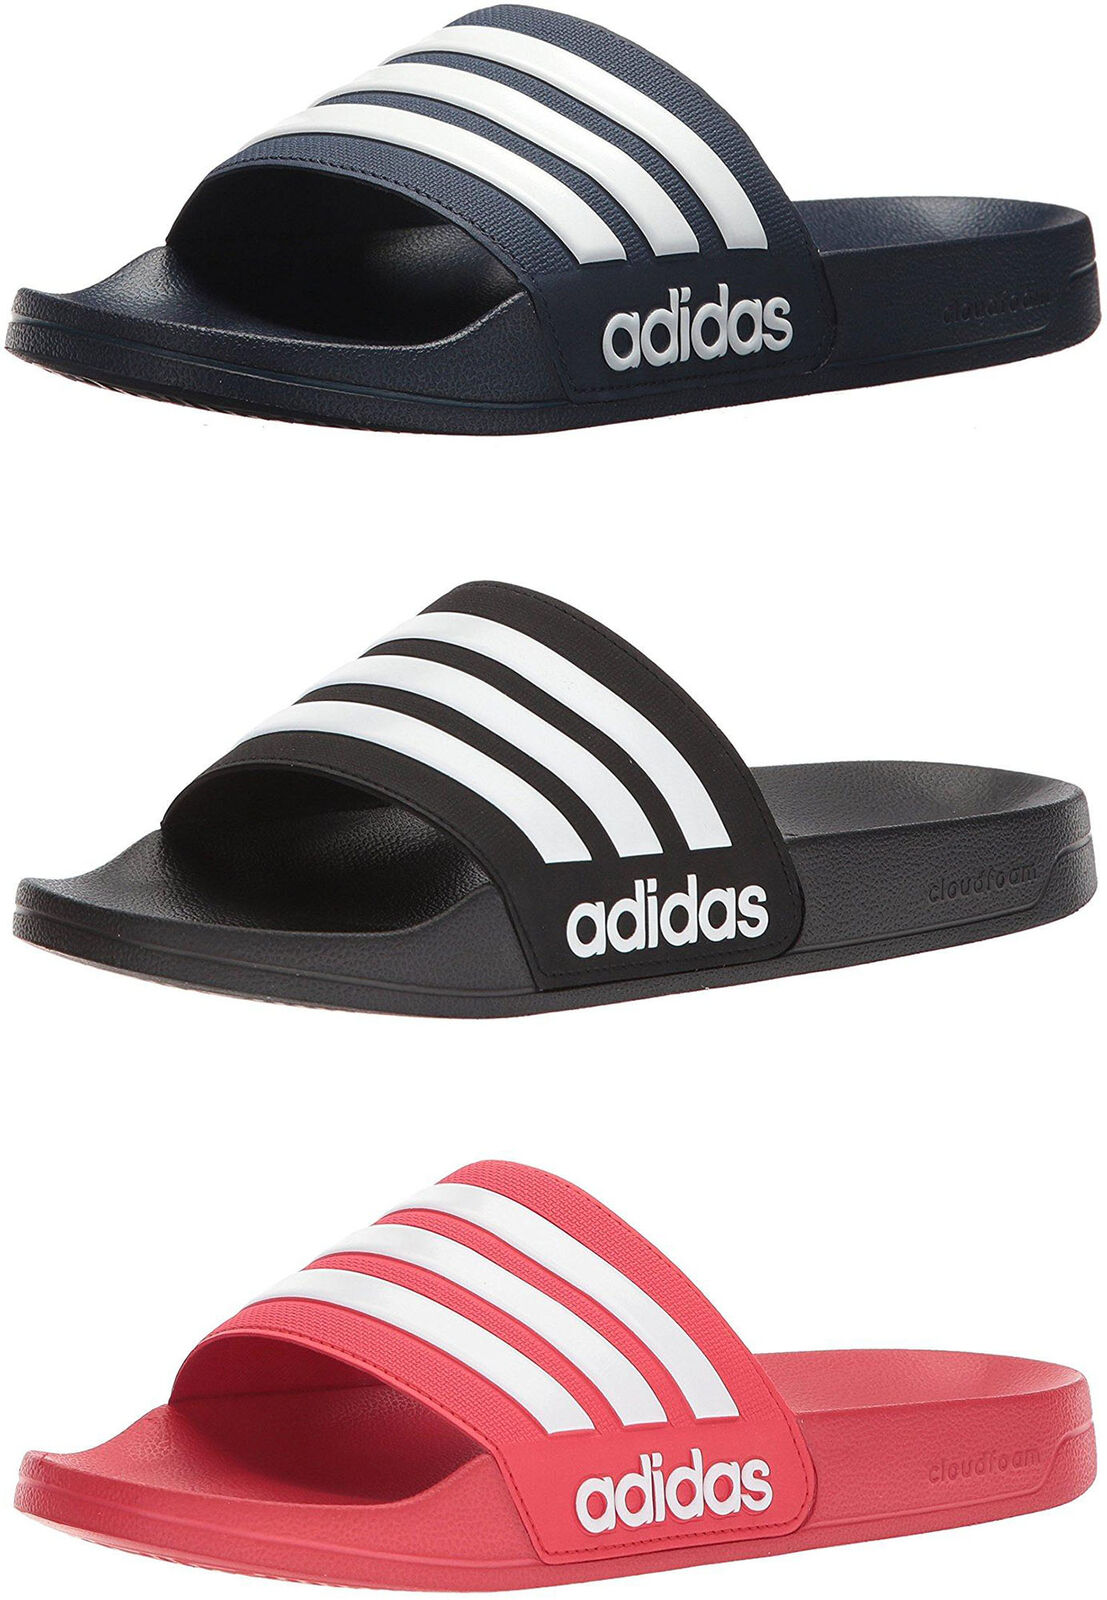 wholesale dealer f3b03 d2a33 adidas Neo Men s Cloudfoam Adilette Slide Sandals, 3 Colors